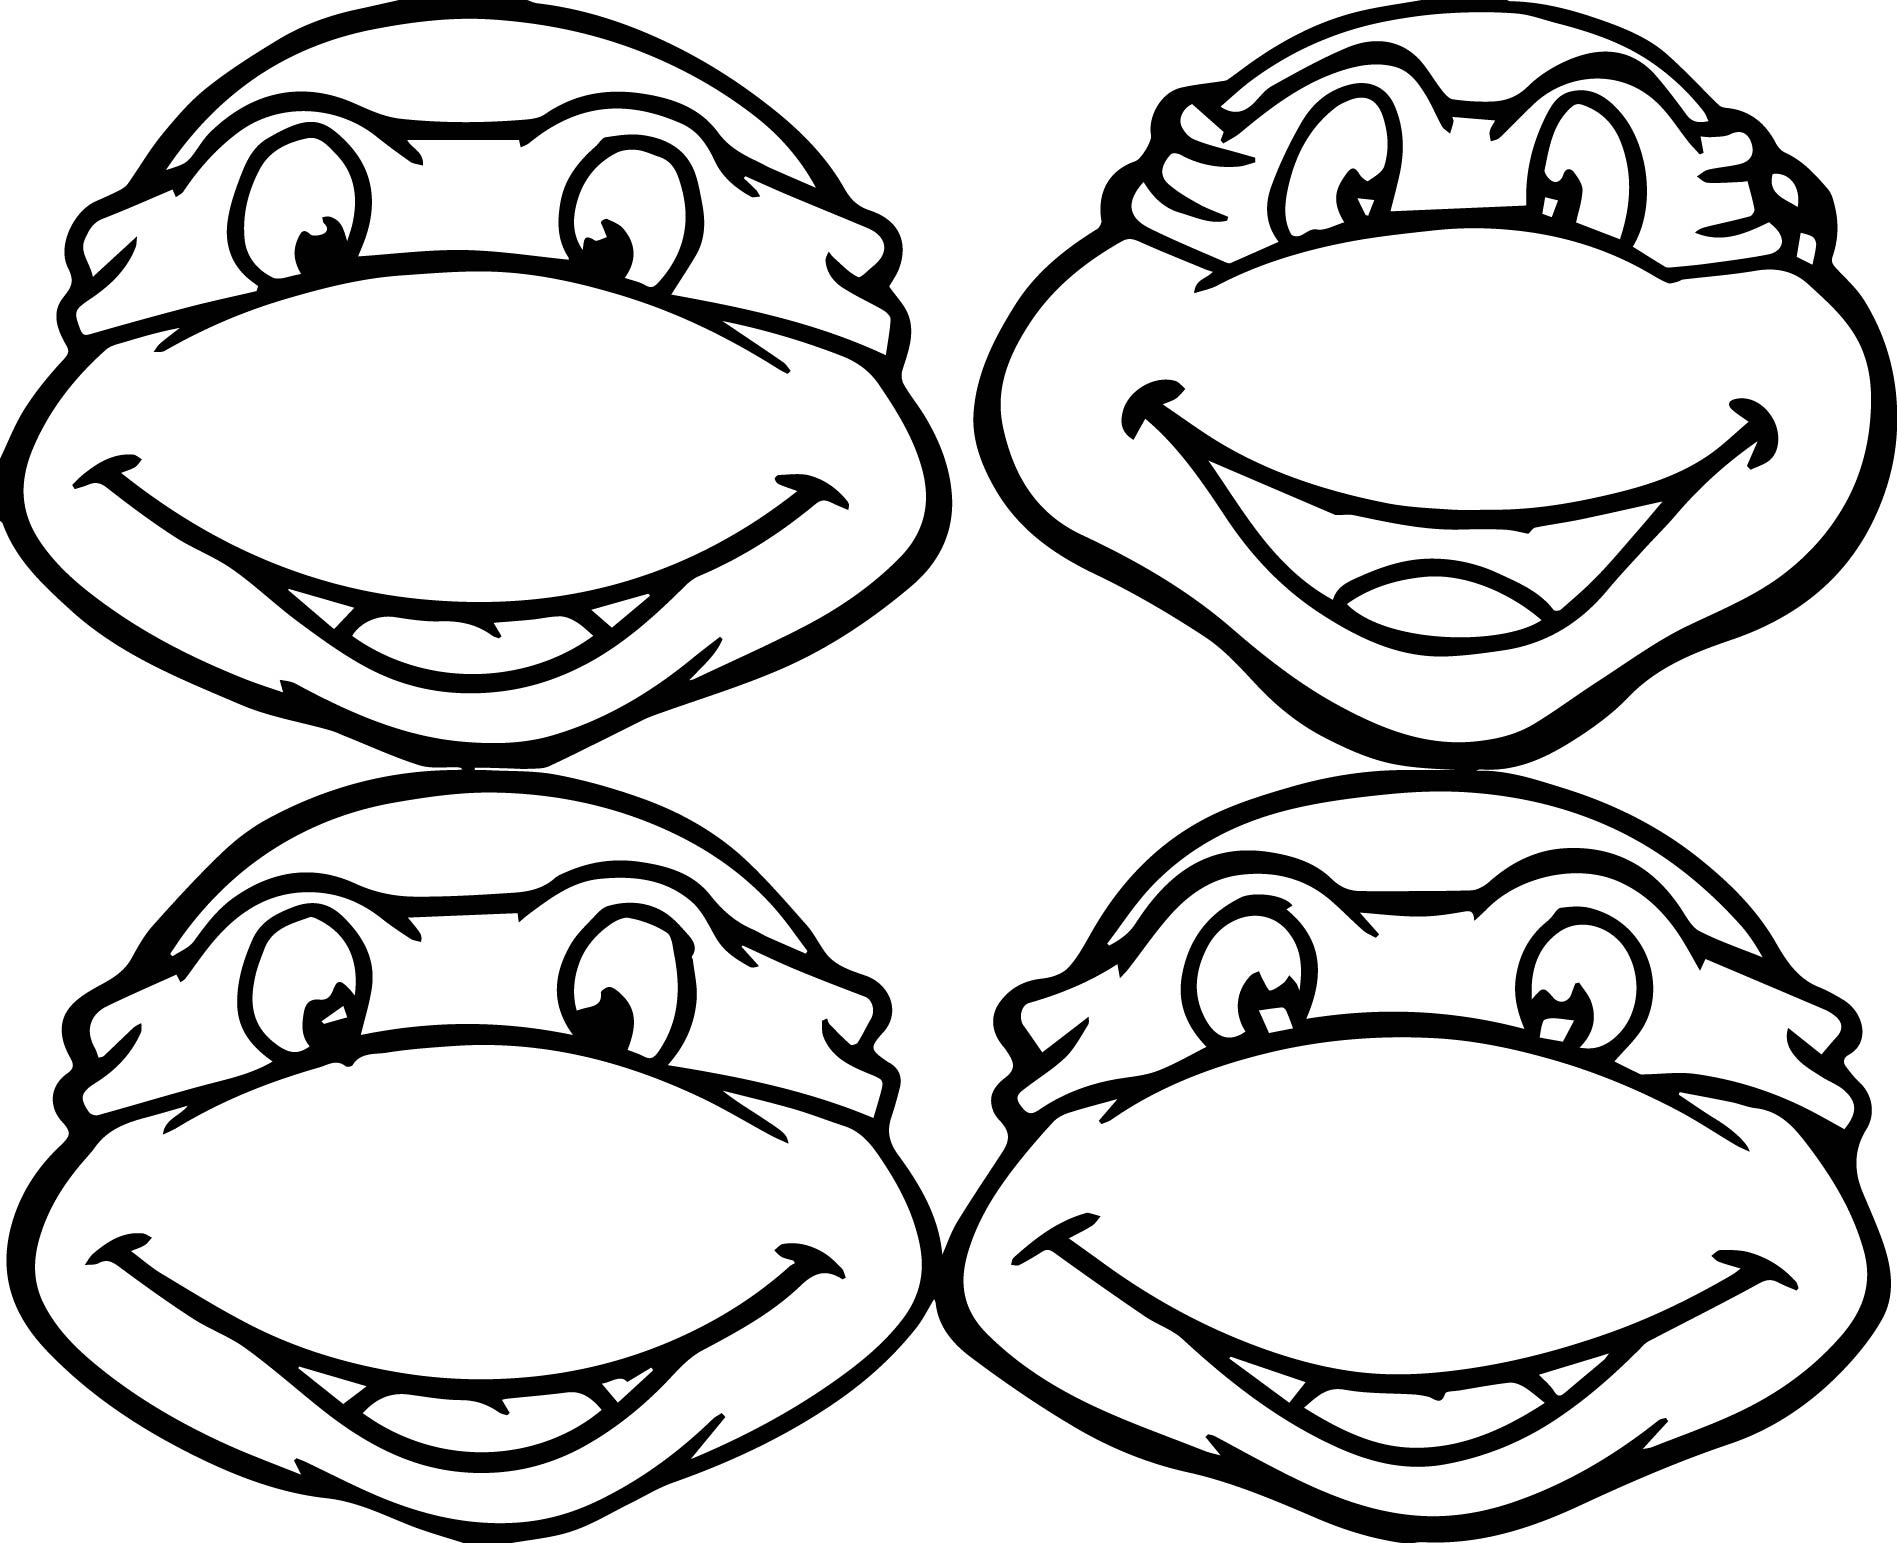 Teenage Mutant Ninja Turtles Coloring Pages Wecoloringpage Com Coloring Pages